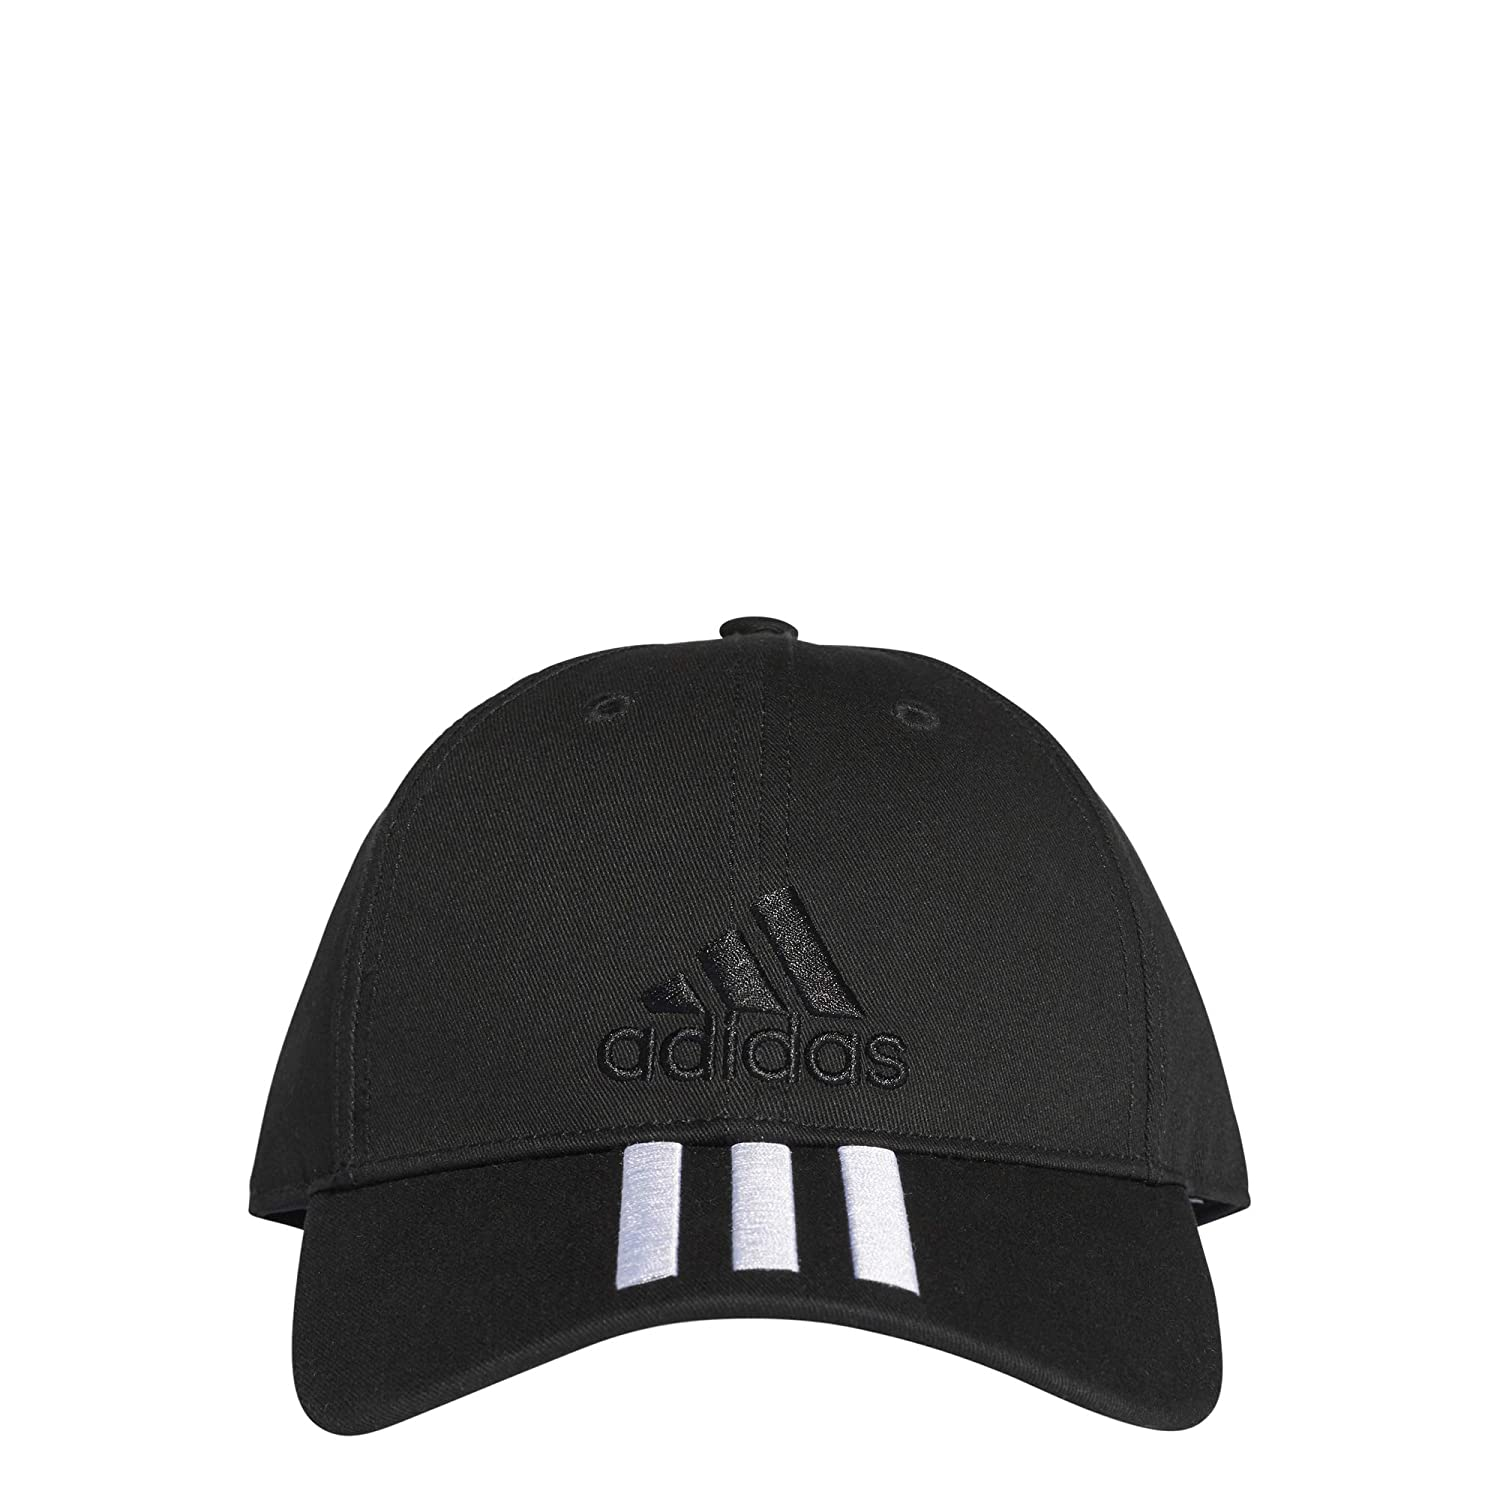 Amazon.com : Six-Panel Classic 3-Stripes Cap (OSFM, Black/White/Black) : Sports & Outdoors